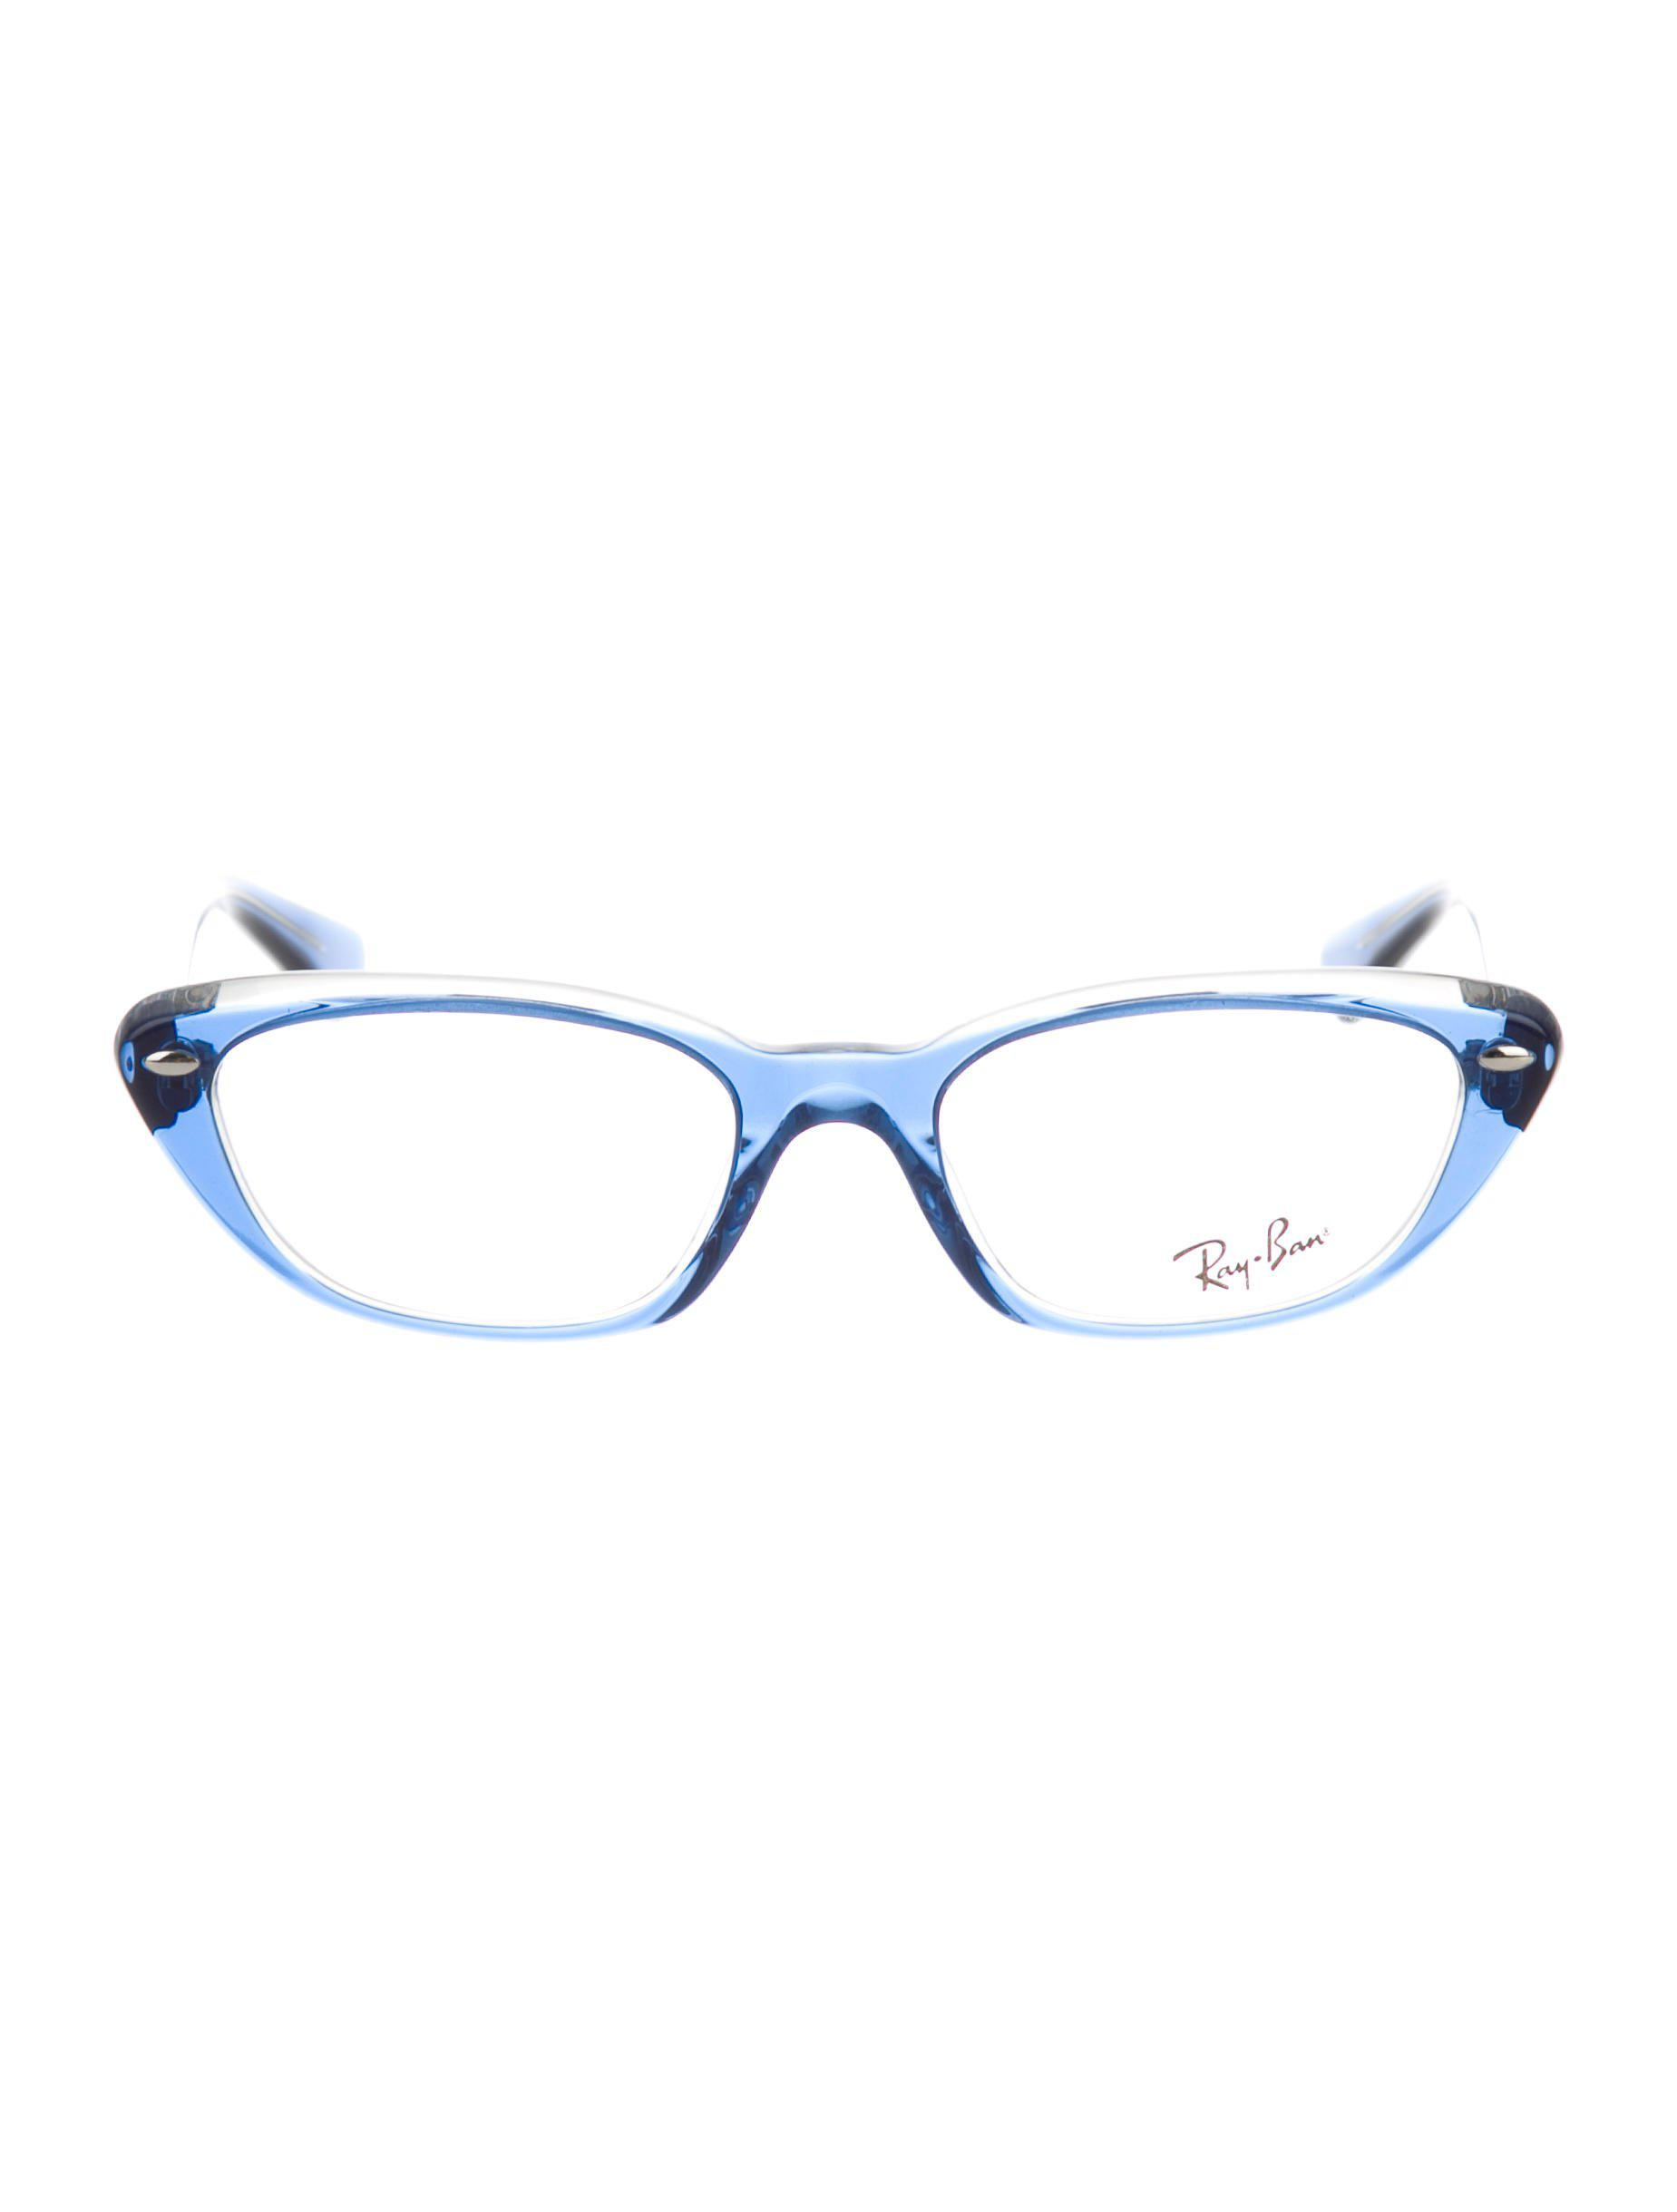 79b5a88b0149 Lyst - Ray-Ban Translucent Cat-eye Eyeglasses Blue in Metallic